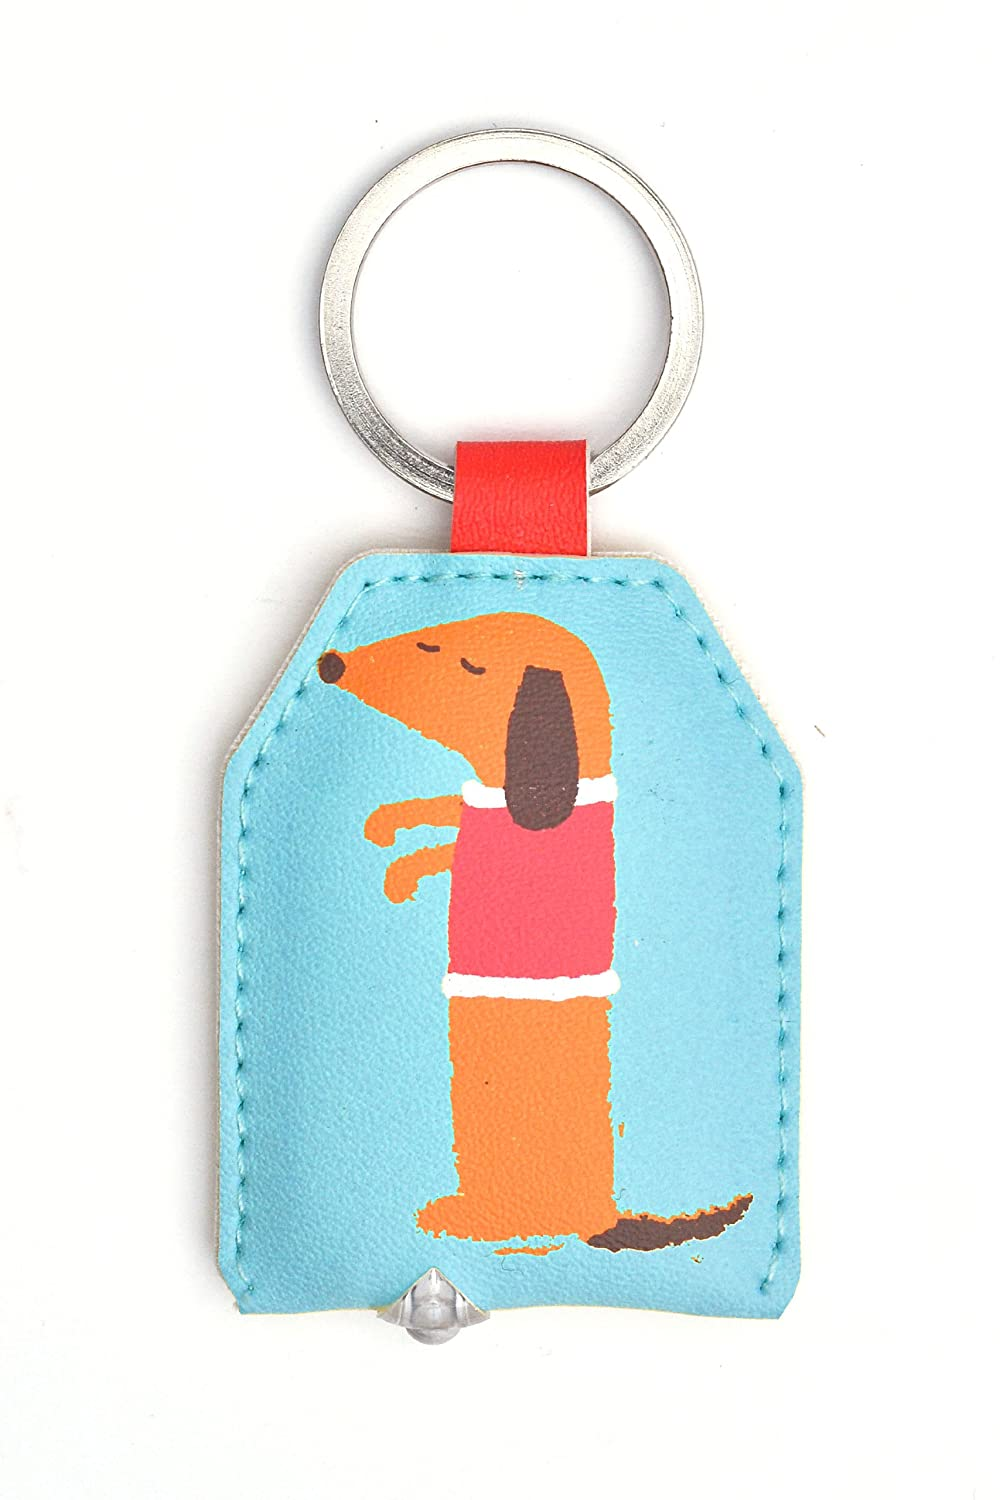 WPL Sausage Dog Keylight - Keyring with Built-in LED Torch - Gift Idea by WPL